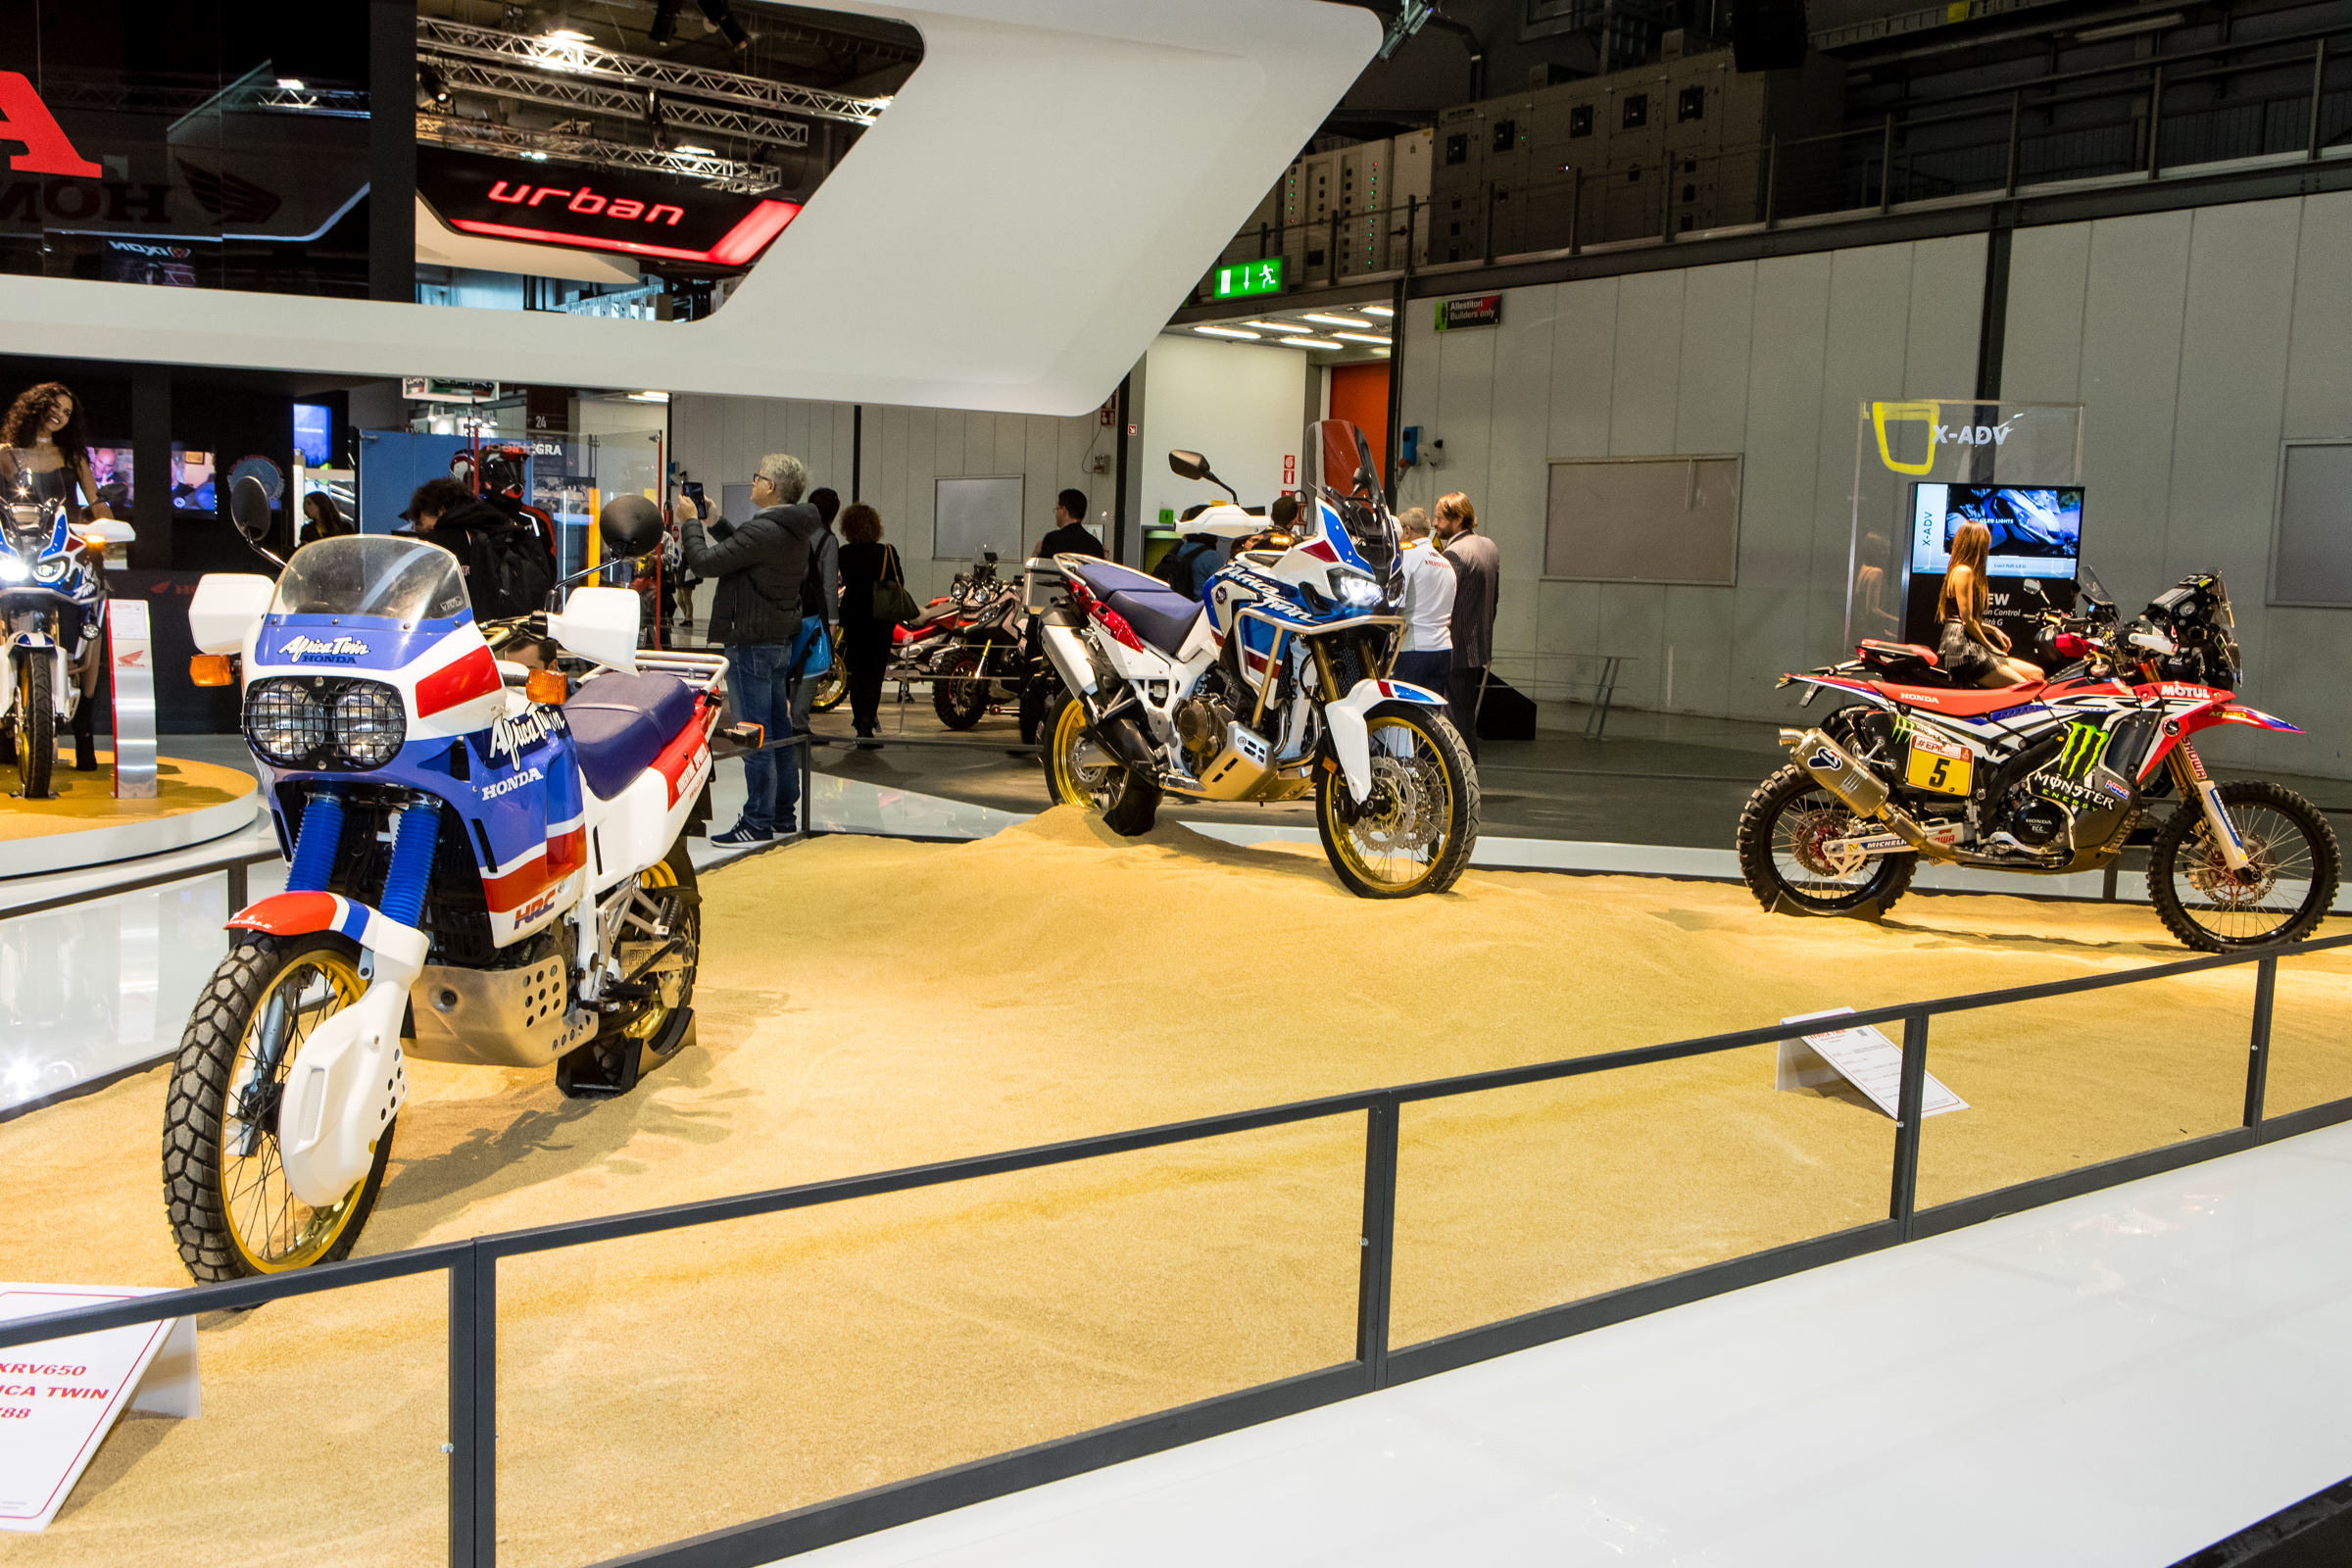 Adventure and Rally are taking over. Here Honda showed off their original Africa Twin, their newest Twin, and the Rally 450 race bike that they take technology from.